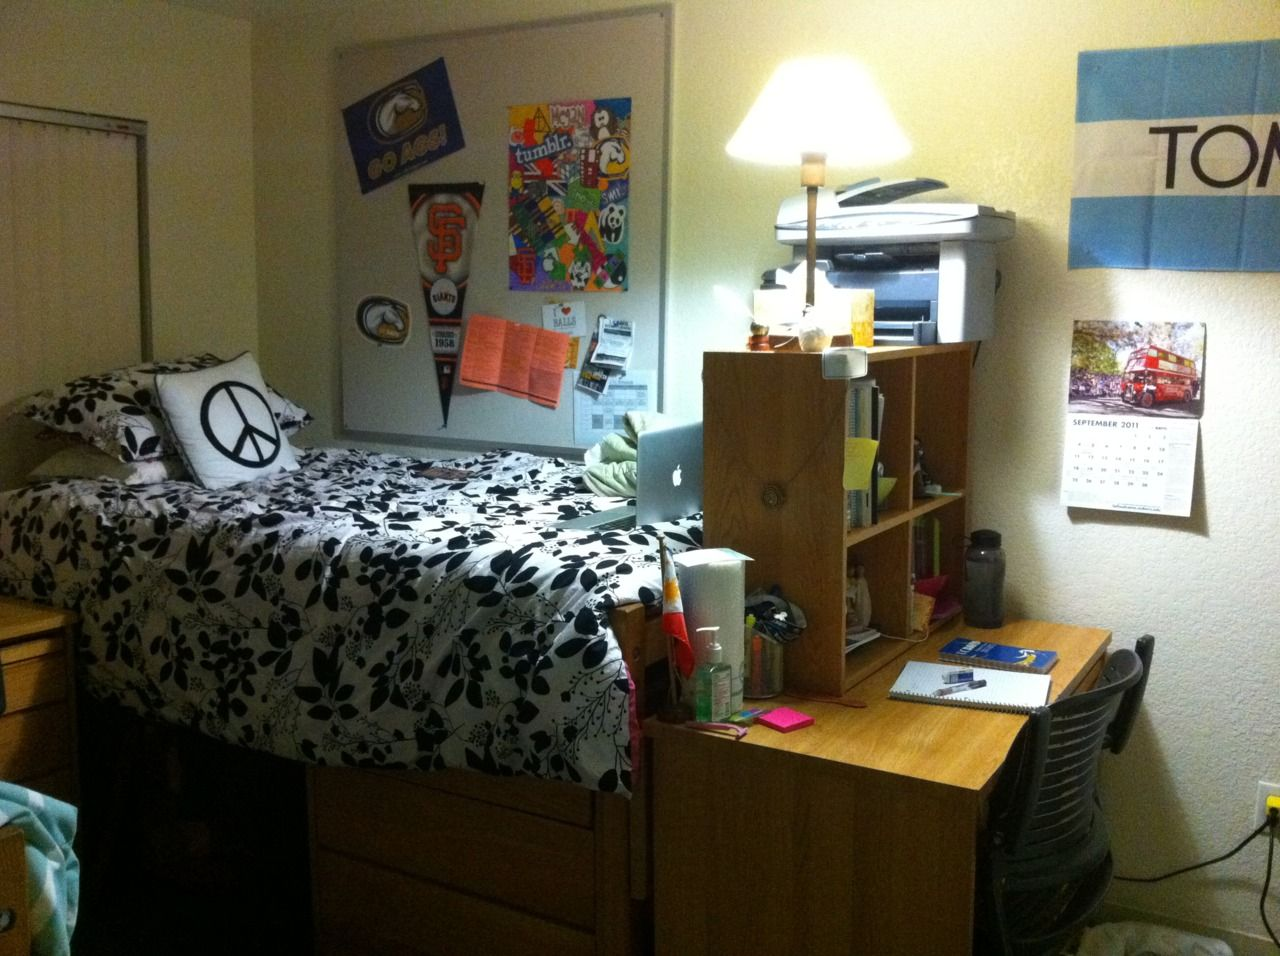 Dorm room furniture layout - Find This Pin And More On Dorm Room Layout